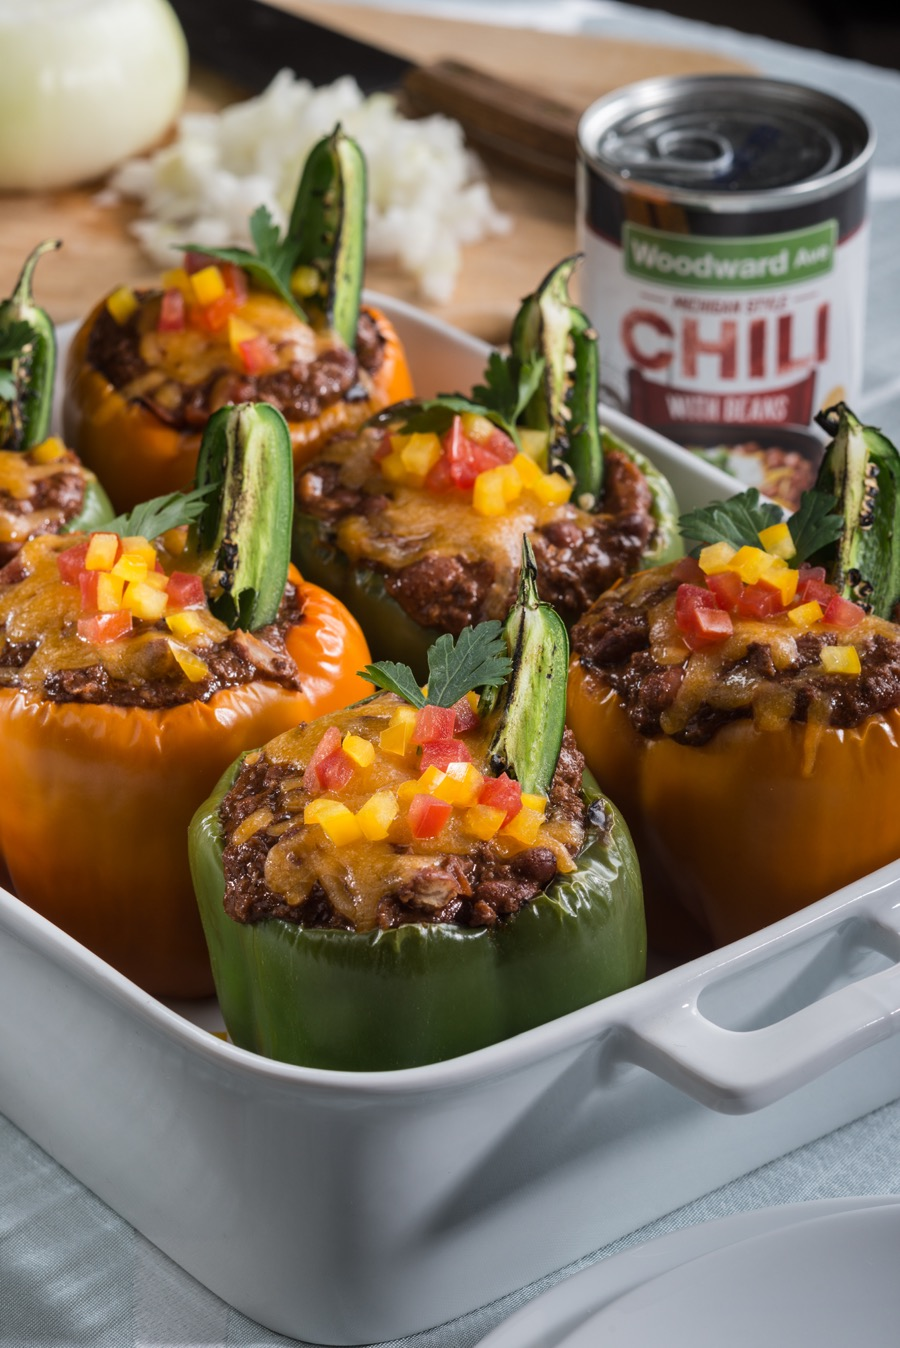 chili-stuffed-bell-peppers-3